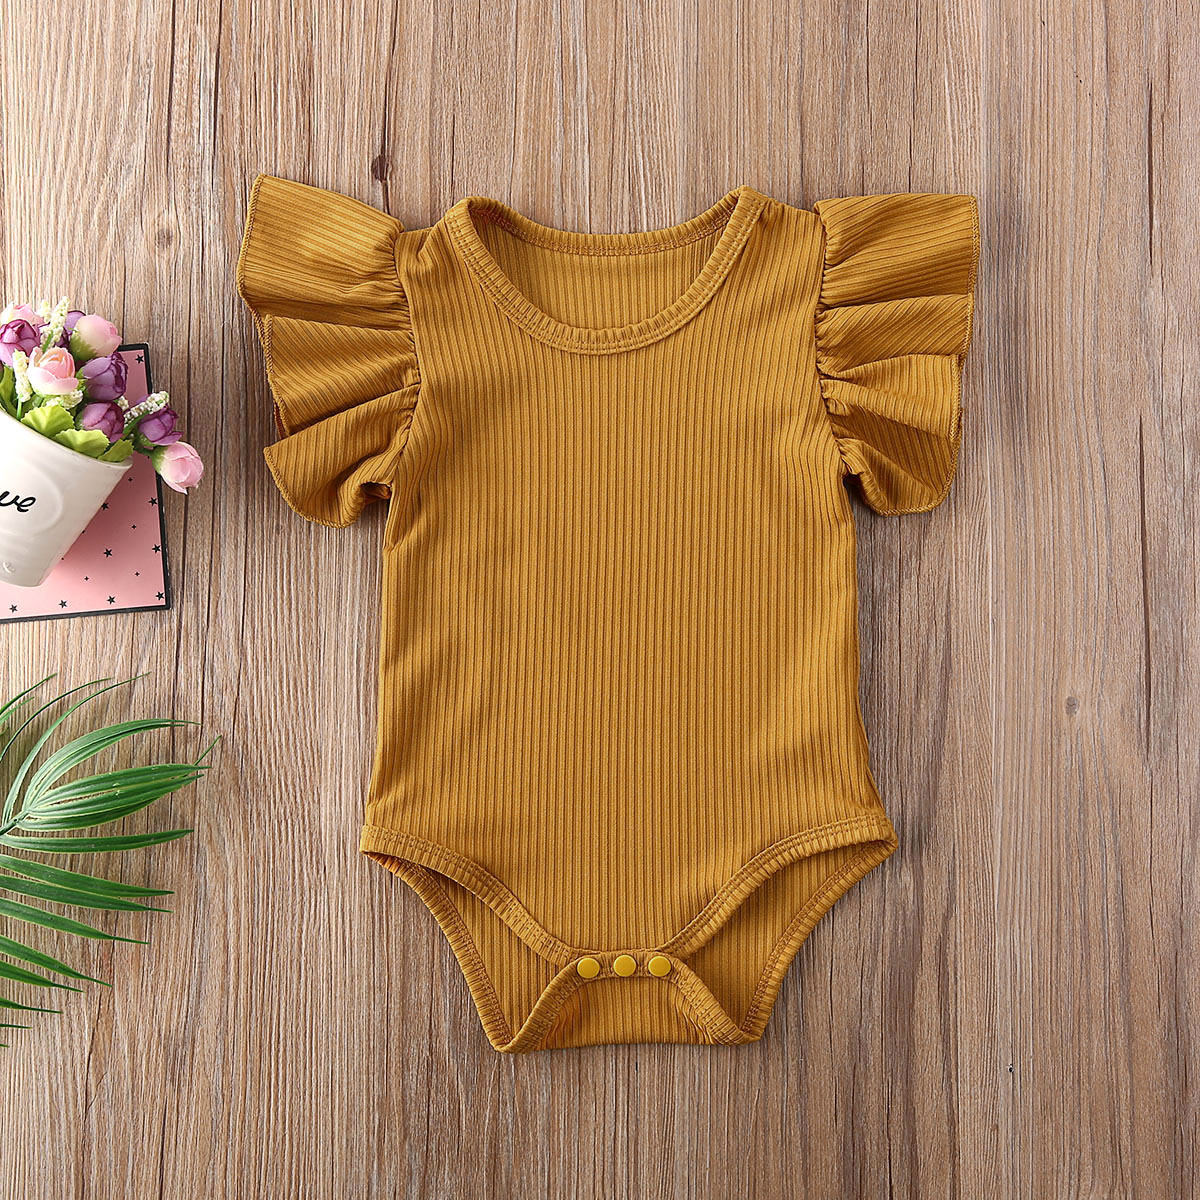 baby girl clothes autumn lattice knitted baby clothes newborn baby girl romper cotton baby cardigan sweater romper jumpsuit 2020  Summer Newborn Baby Girl Clothes Solid Color Short Sleeve Romper Knitted Cotton Romper Jumpsuit Sunsuit Outfits Clothes